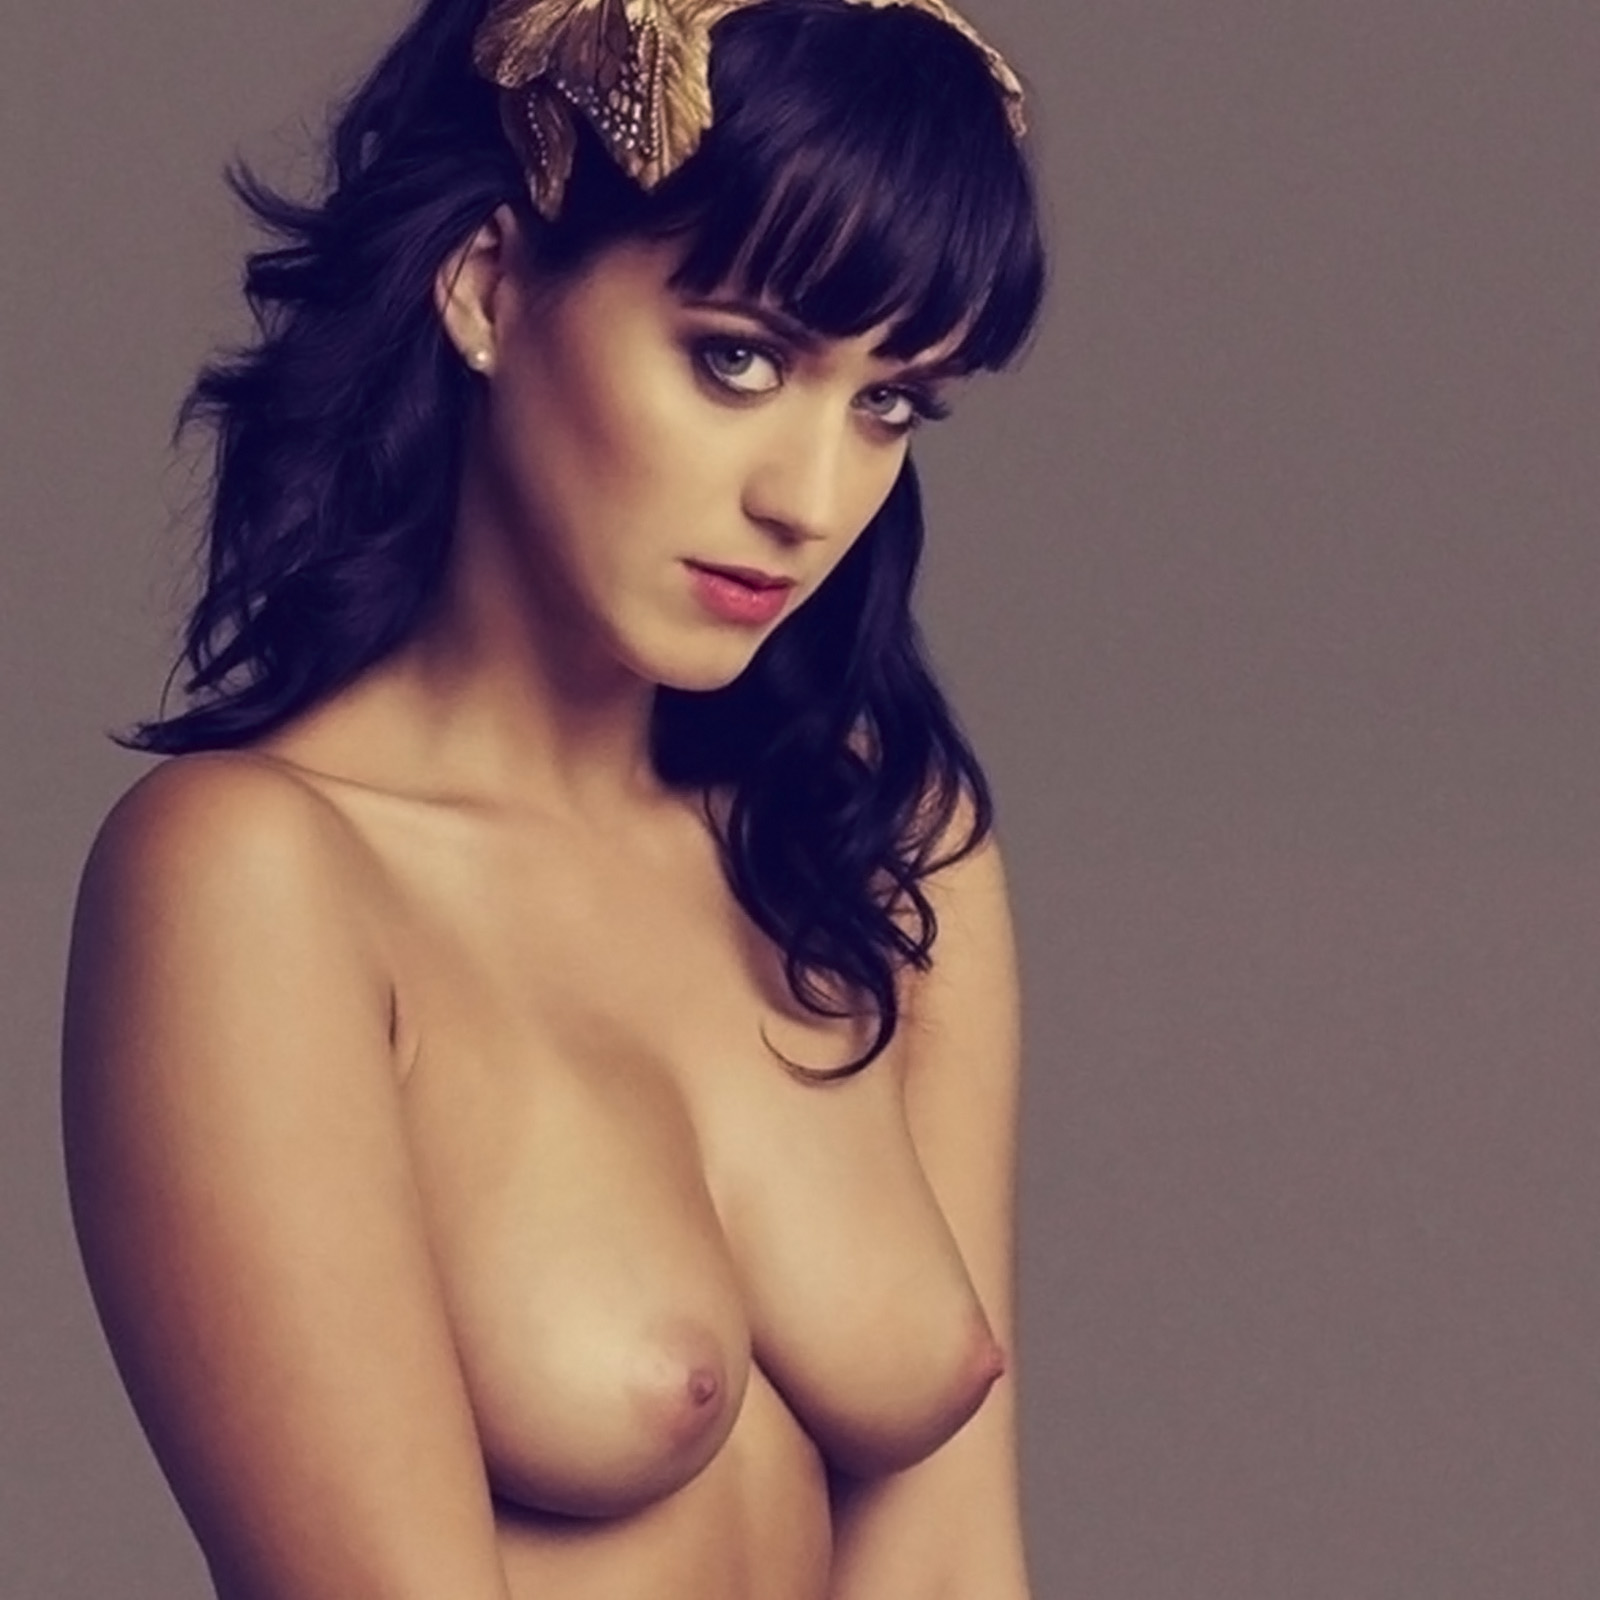 Katy Perry Nudes You Must See Right Now 57 PICS